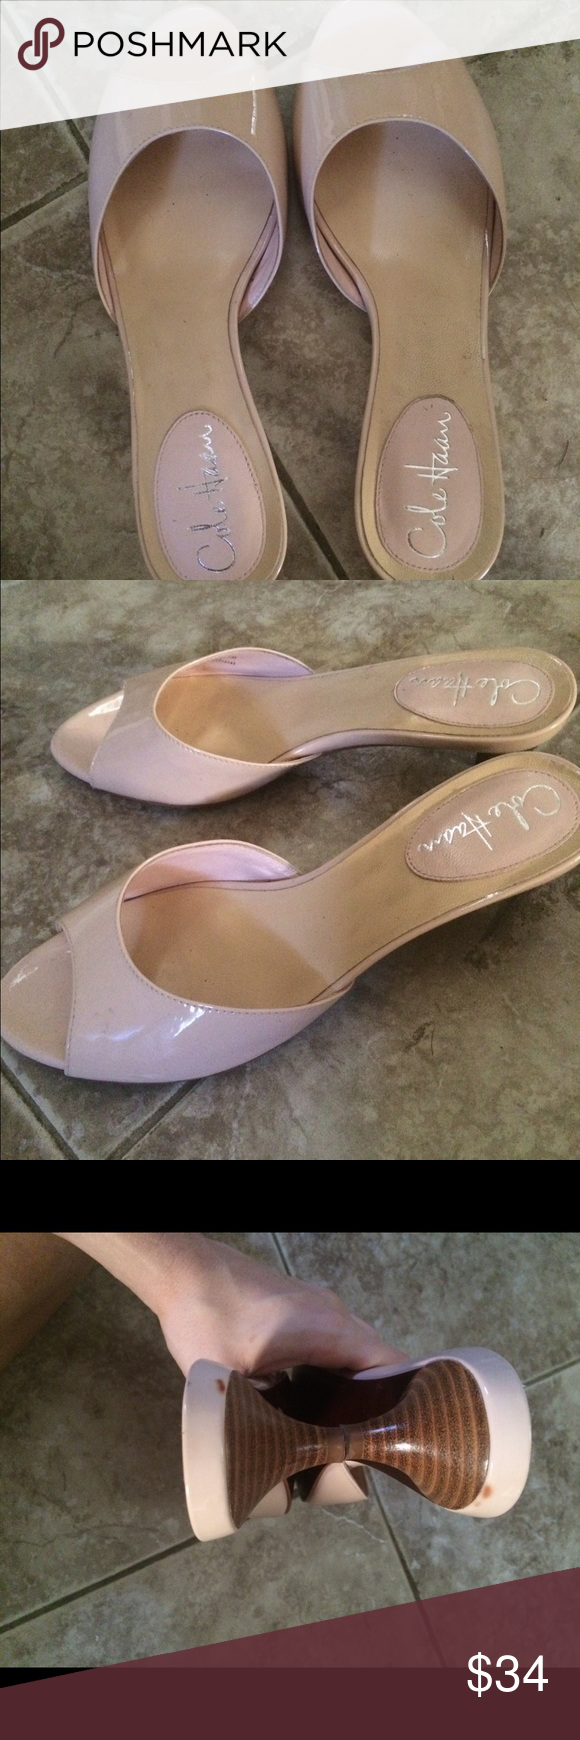 Cole haan Nike air pink/nude open toe shoes Cole haan Nike air technology. Low (.5in) heel. Only flaw is tiny spot on back of each heel Cole Haan Shoes Sandals